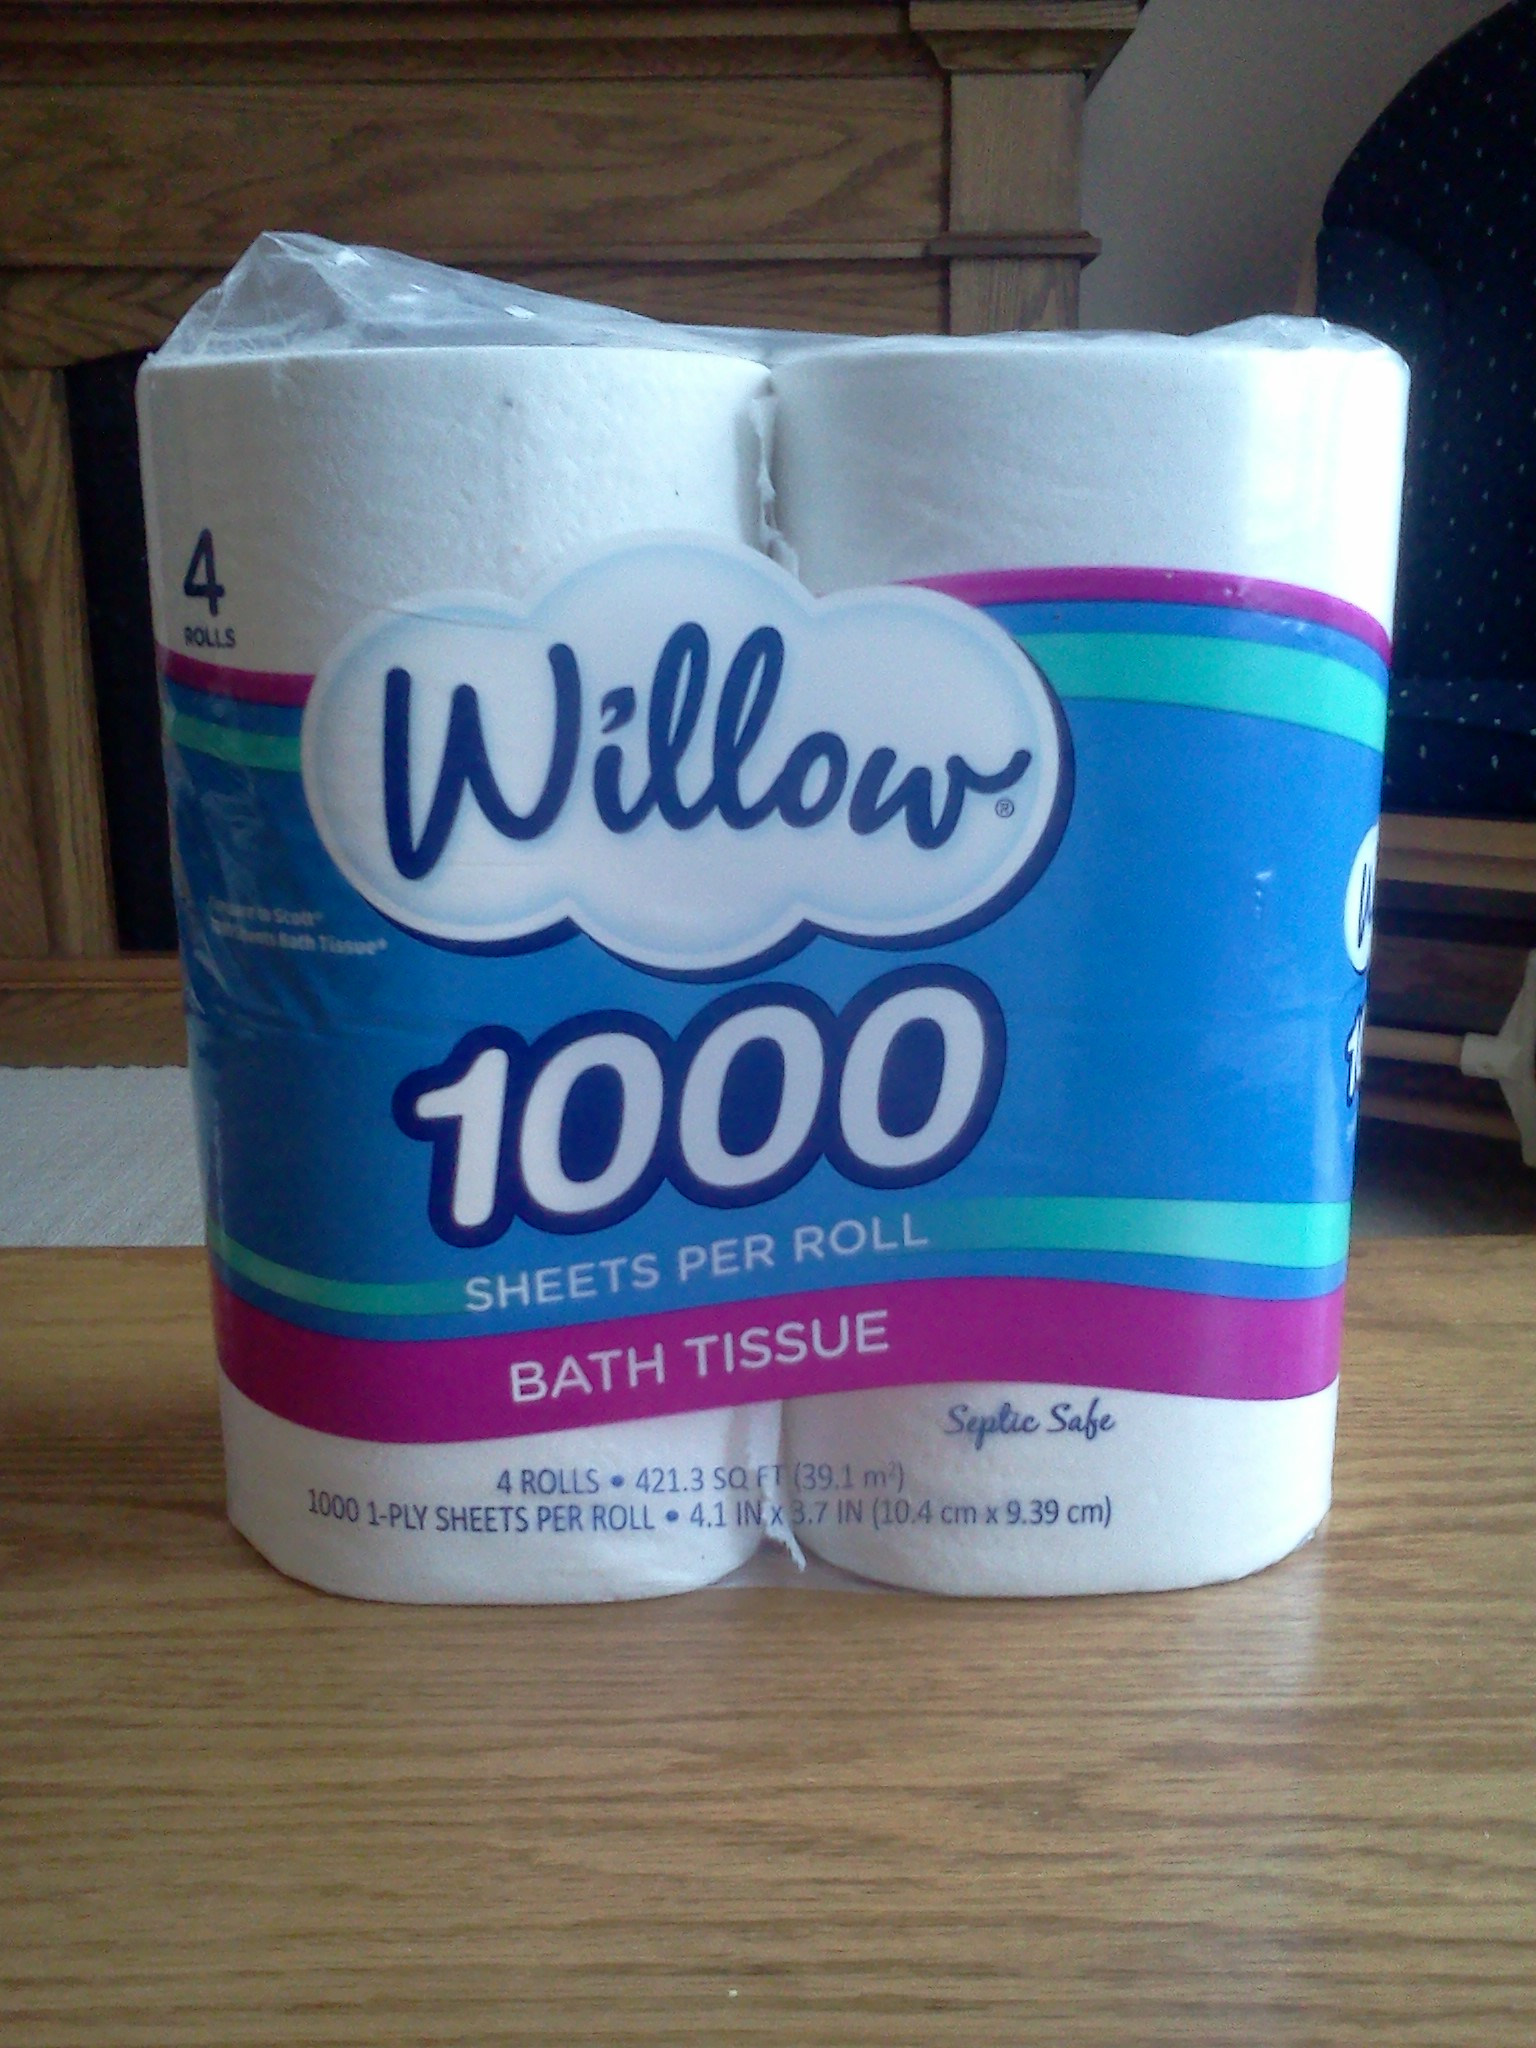 Willow Toilet Paper